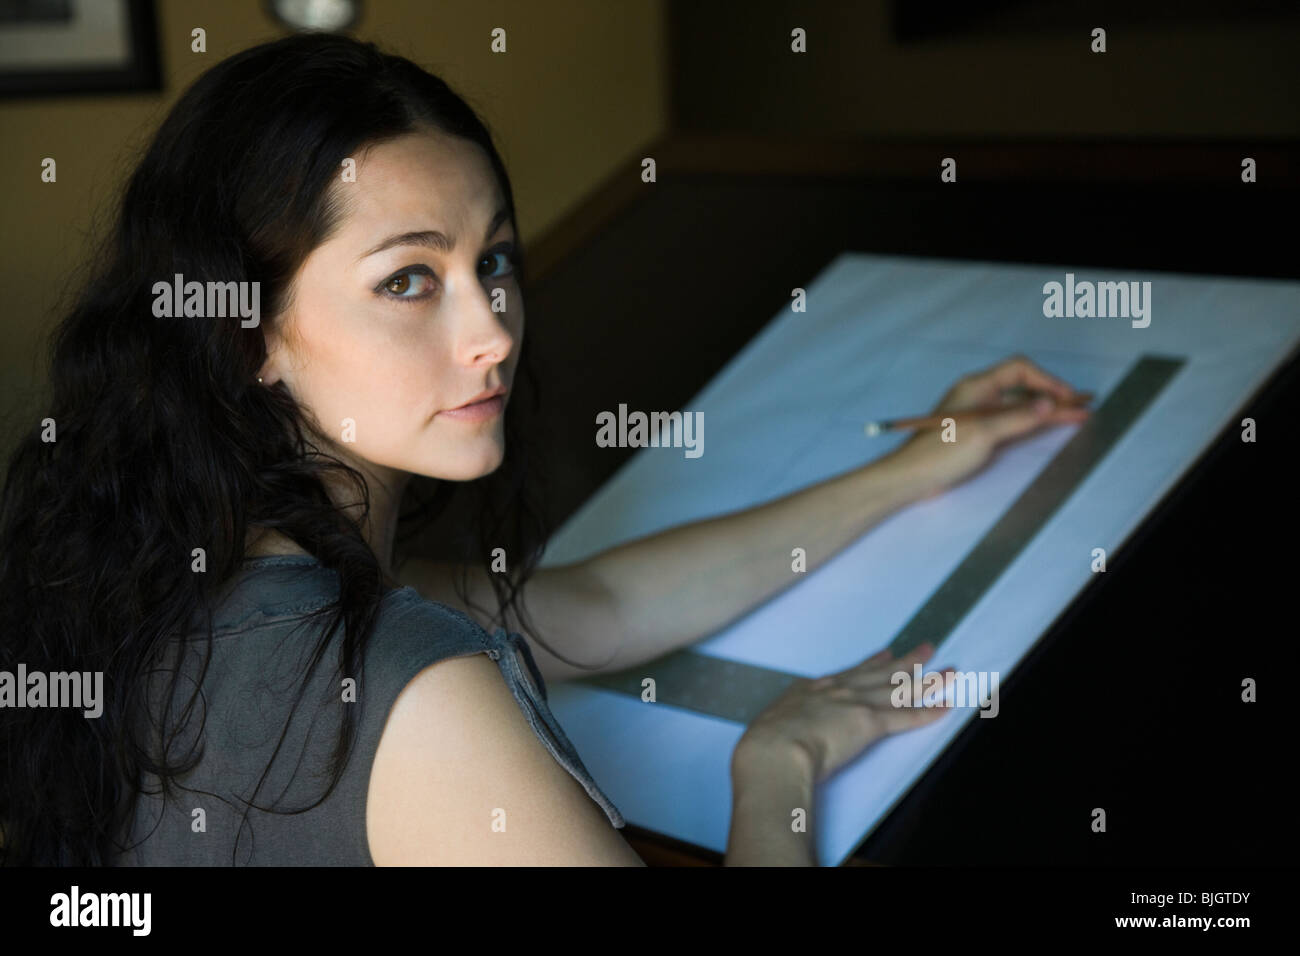 woman at a drafting table - Stock Image